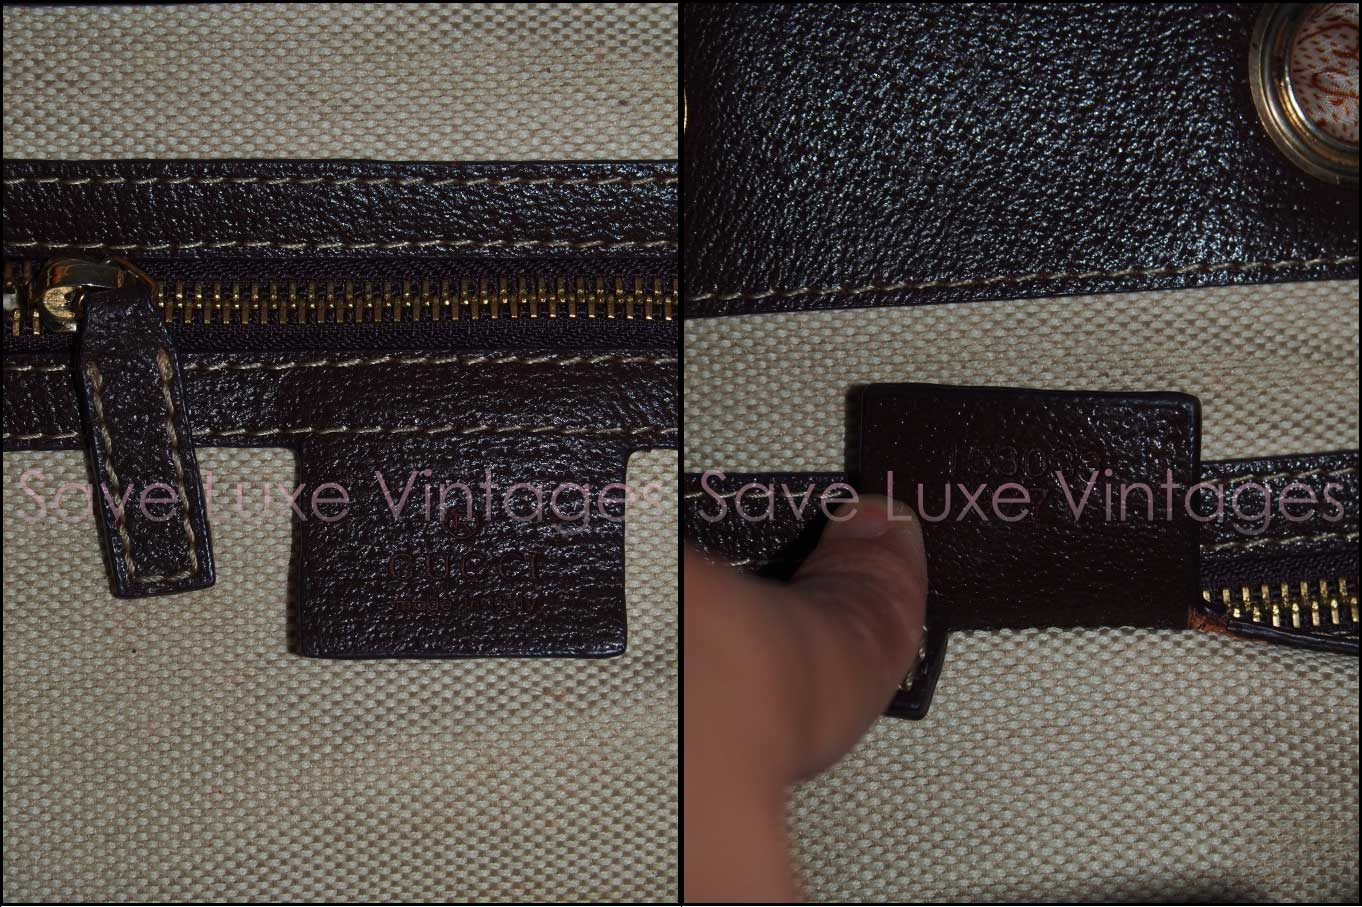 Fake Gucci Positano Monogram Canvas bag with serial number 153033 9771 - Gucci Serial Number Check - How to Tell if a Gucci Bag is Real